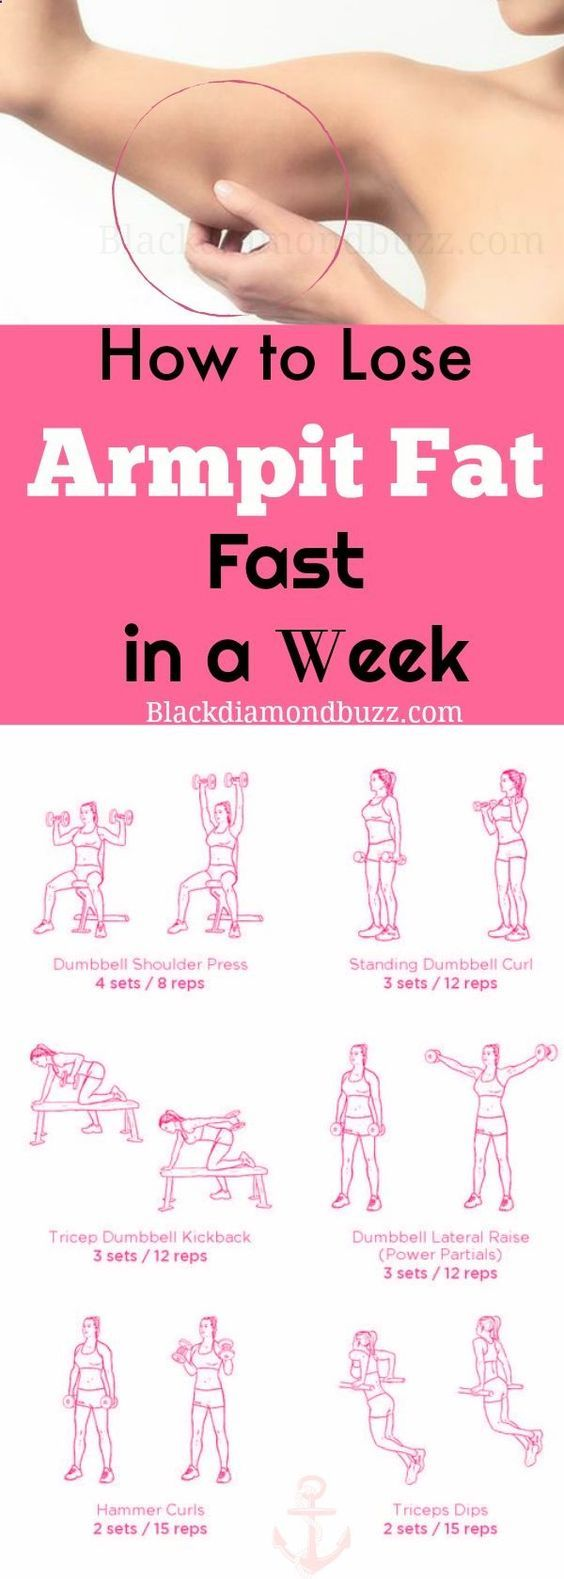 How to Lose Armpit Fat Fast in a Week - Slim arms fast now ...